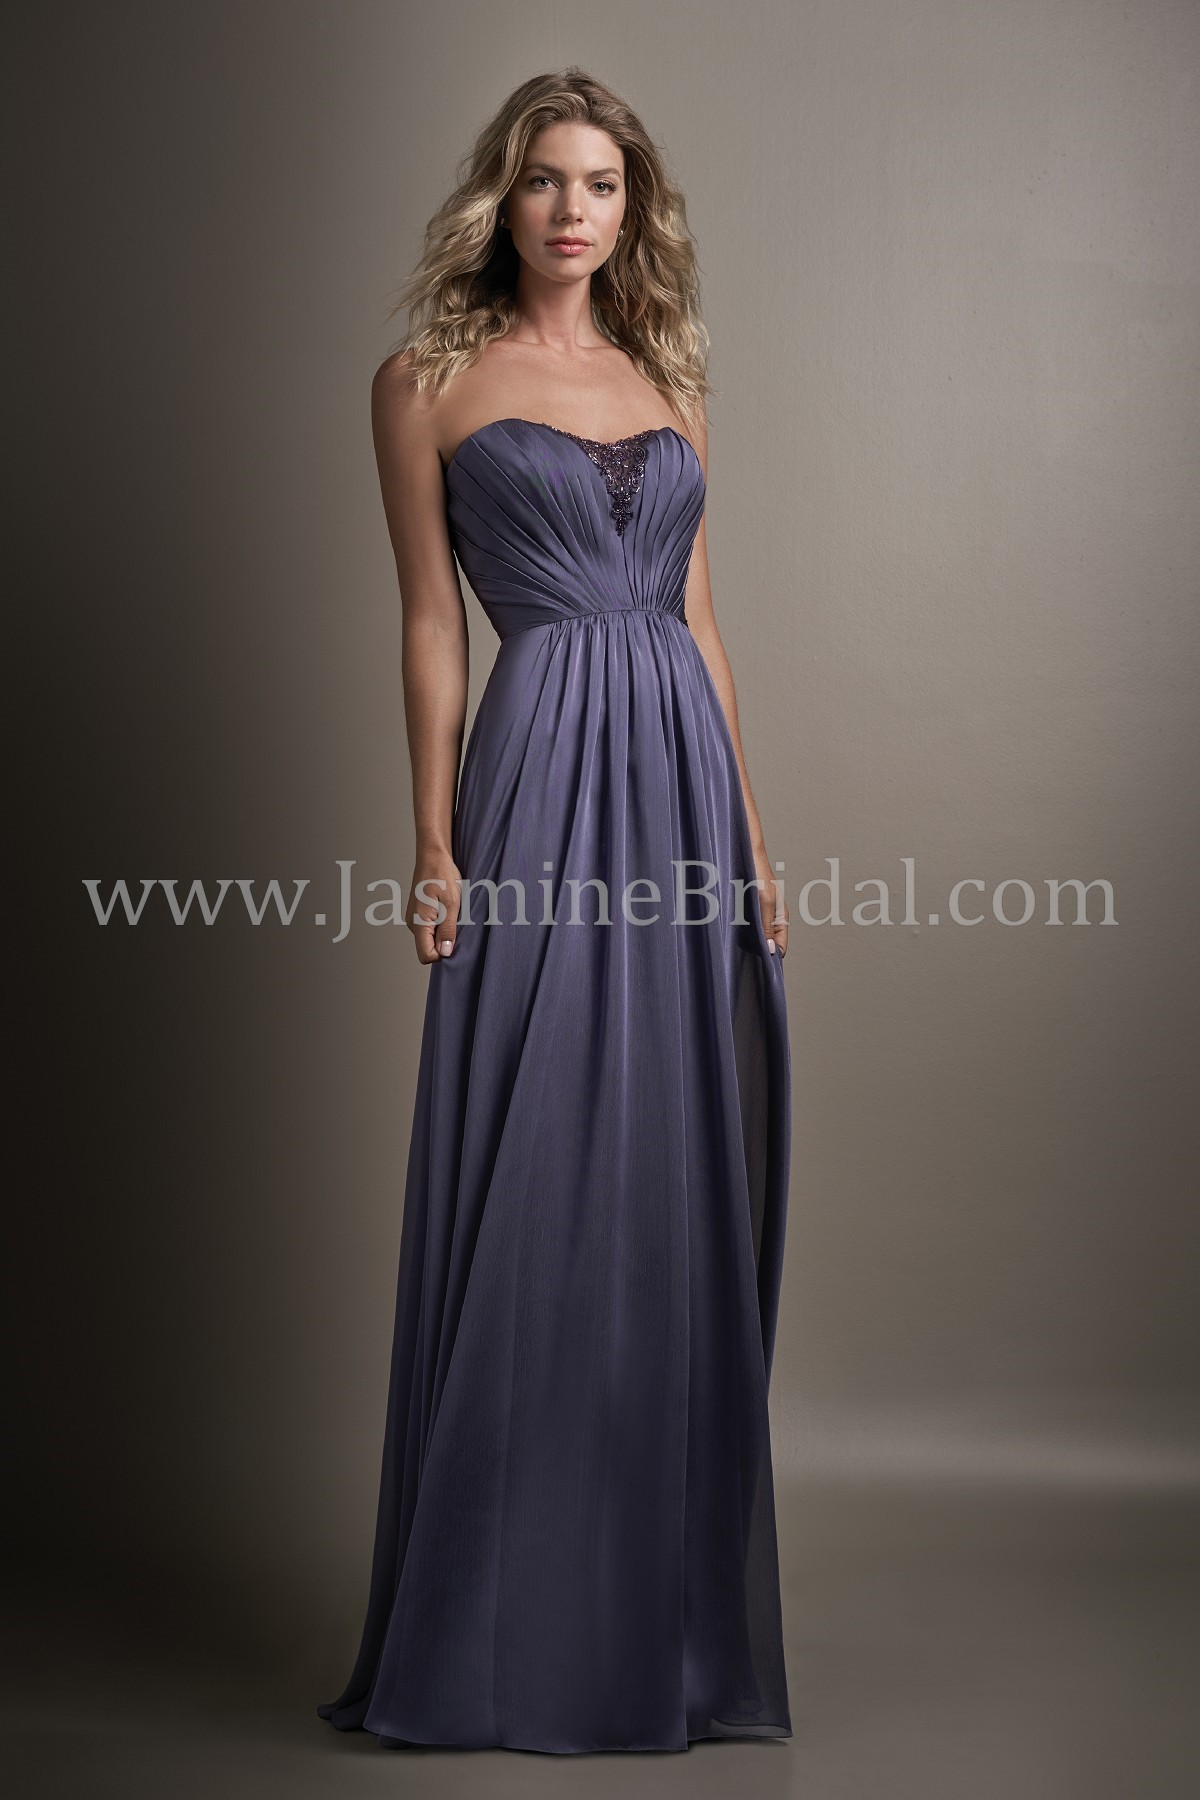 bde6df2866c L194013 Long Sweetheart Strapless Belsoie Tiffany Chiffon Bridesmaid Dress